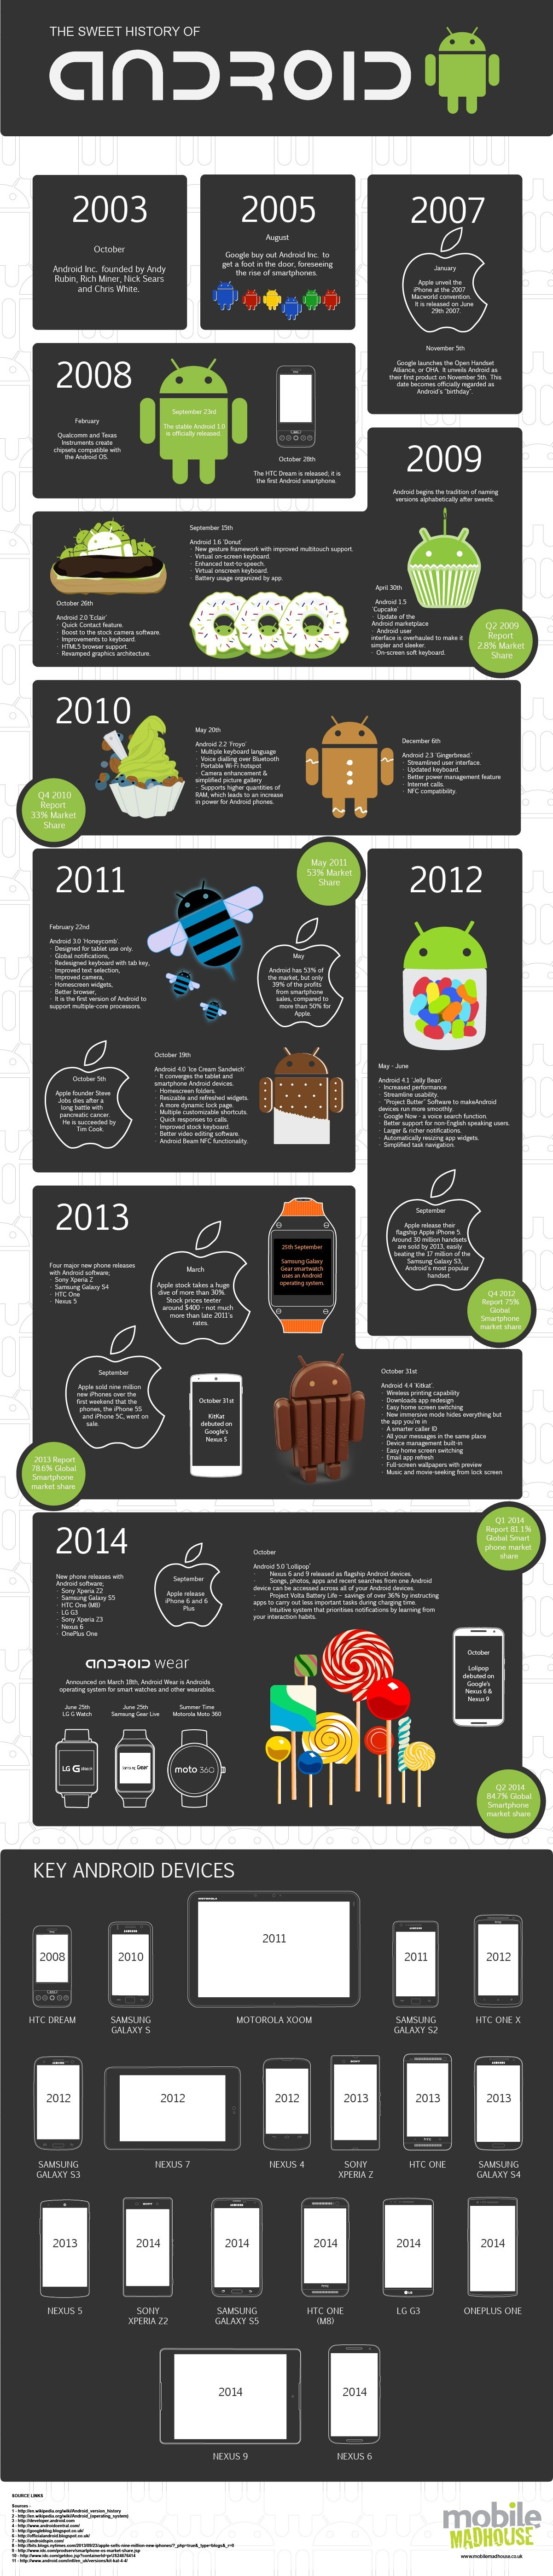 A Sweet History Of Android [INFOGRAPHIC]